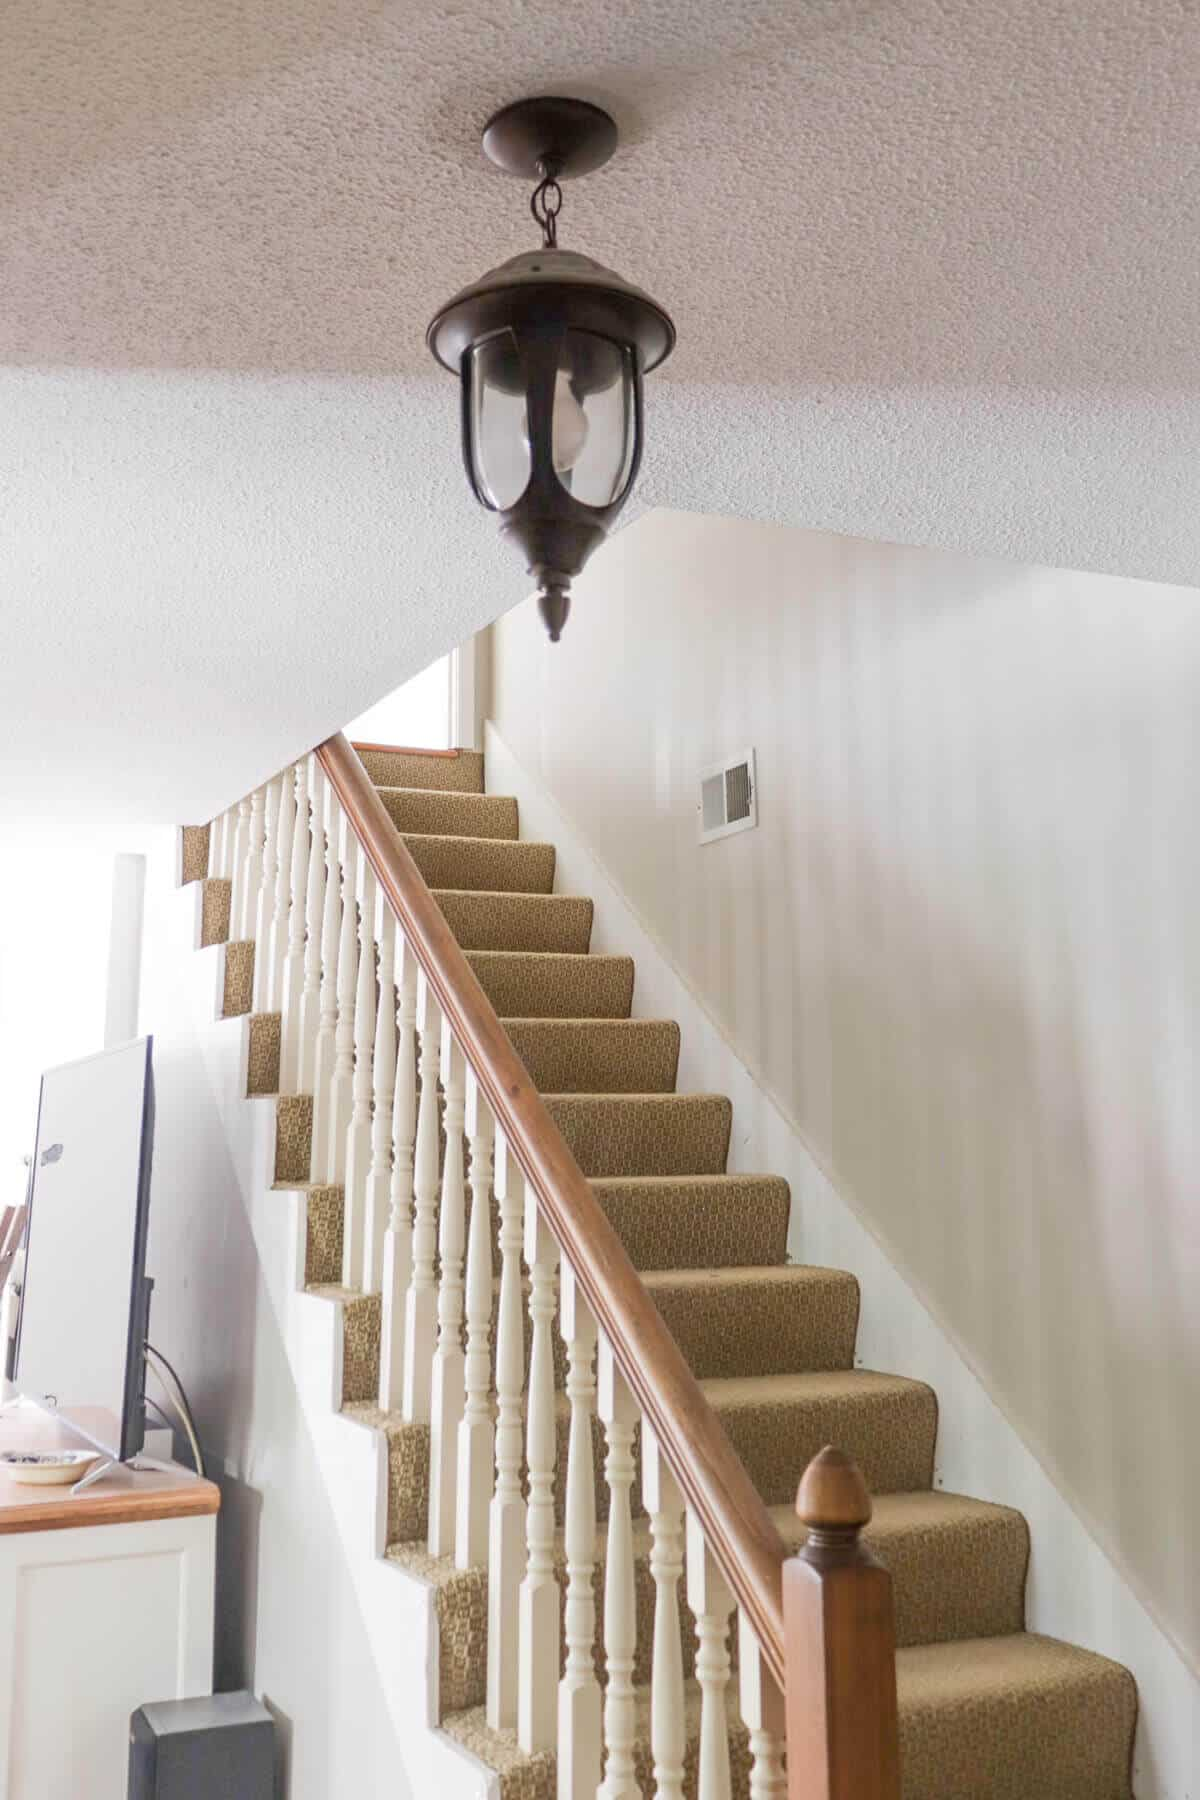 dated stairway with popcorn coated ceiling and old hanging pendant light